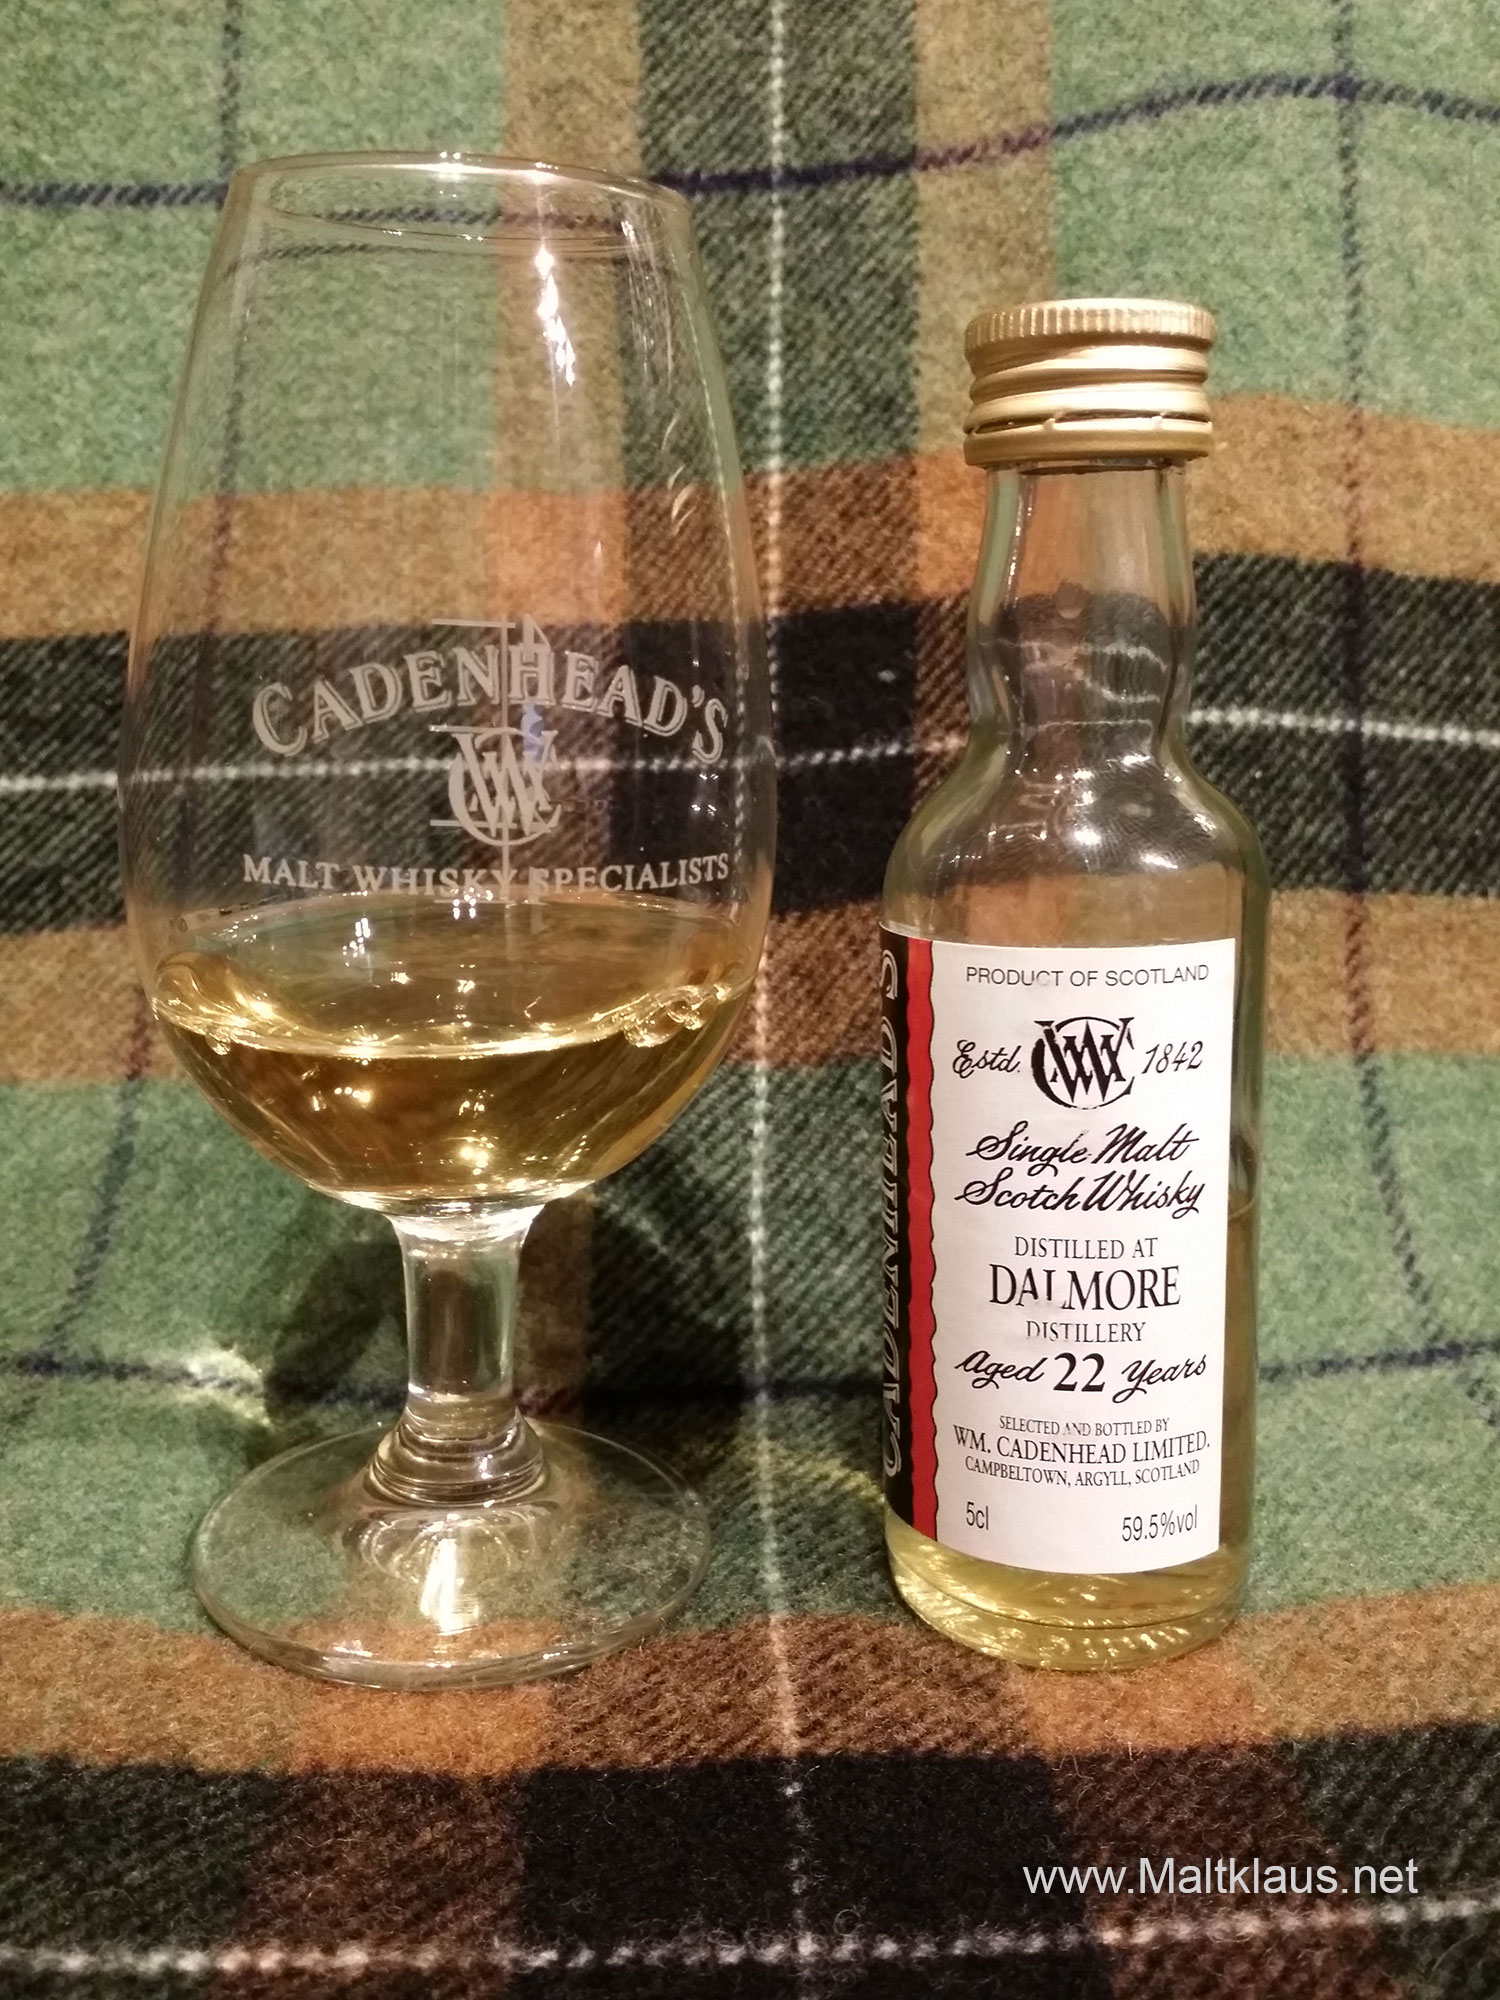 Dalmore 1992 22 years by Cadenhead's